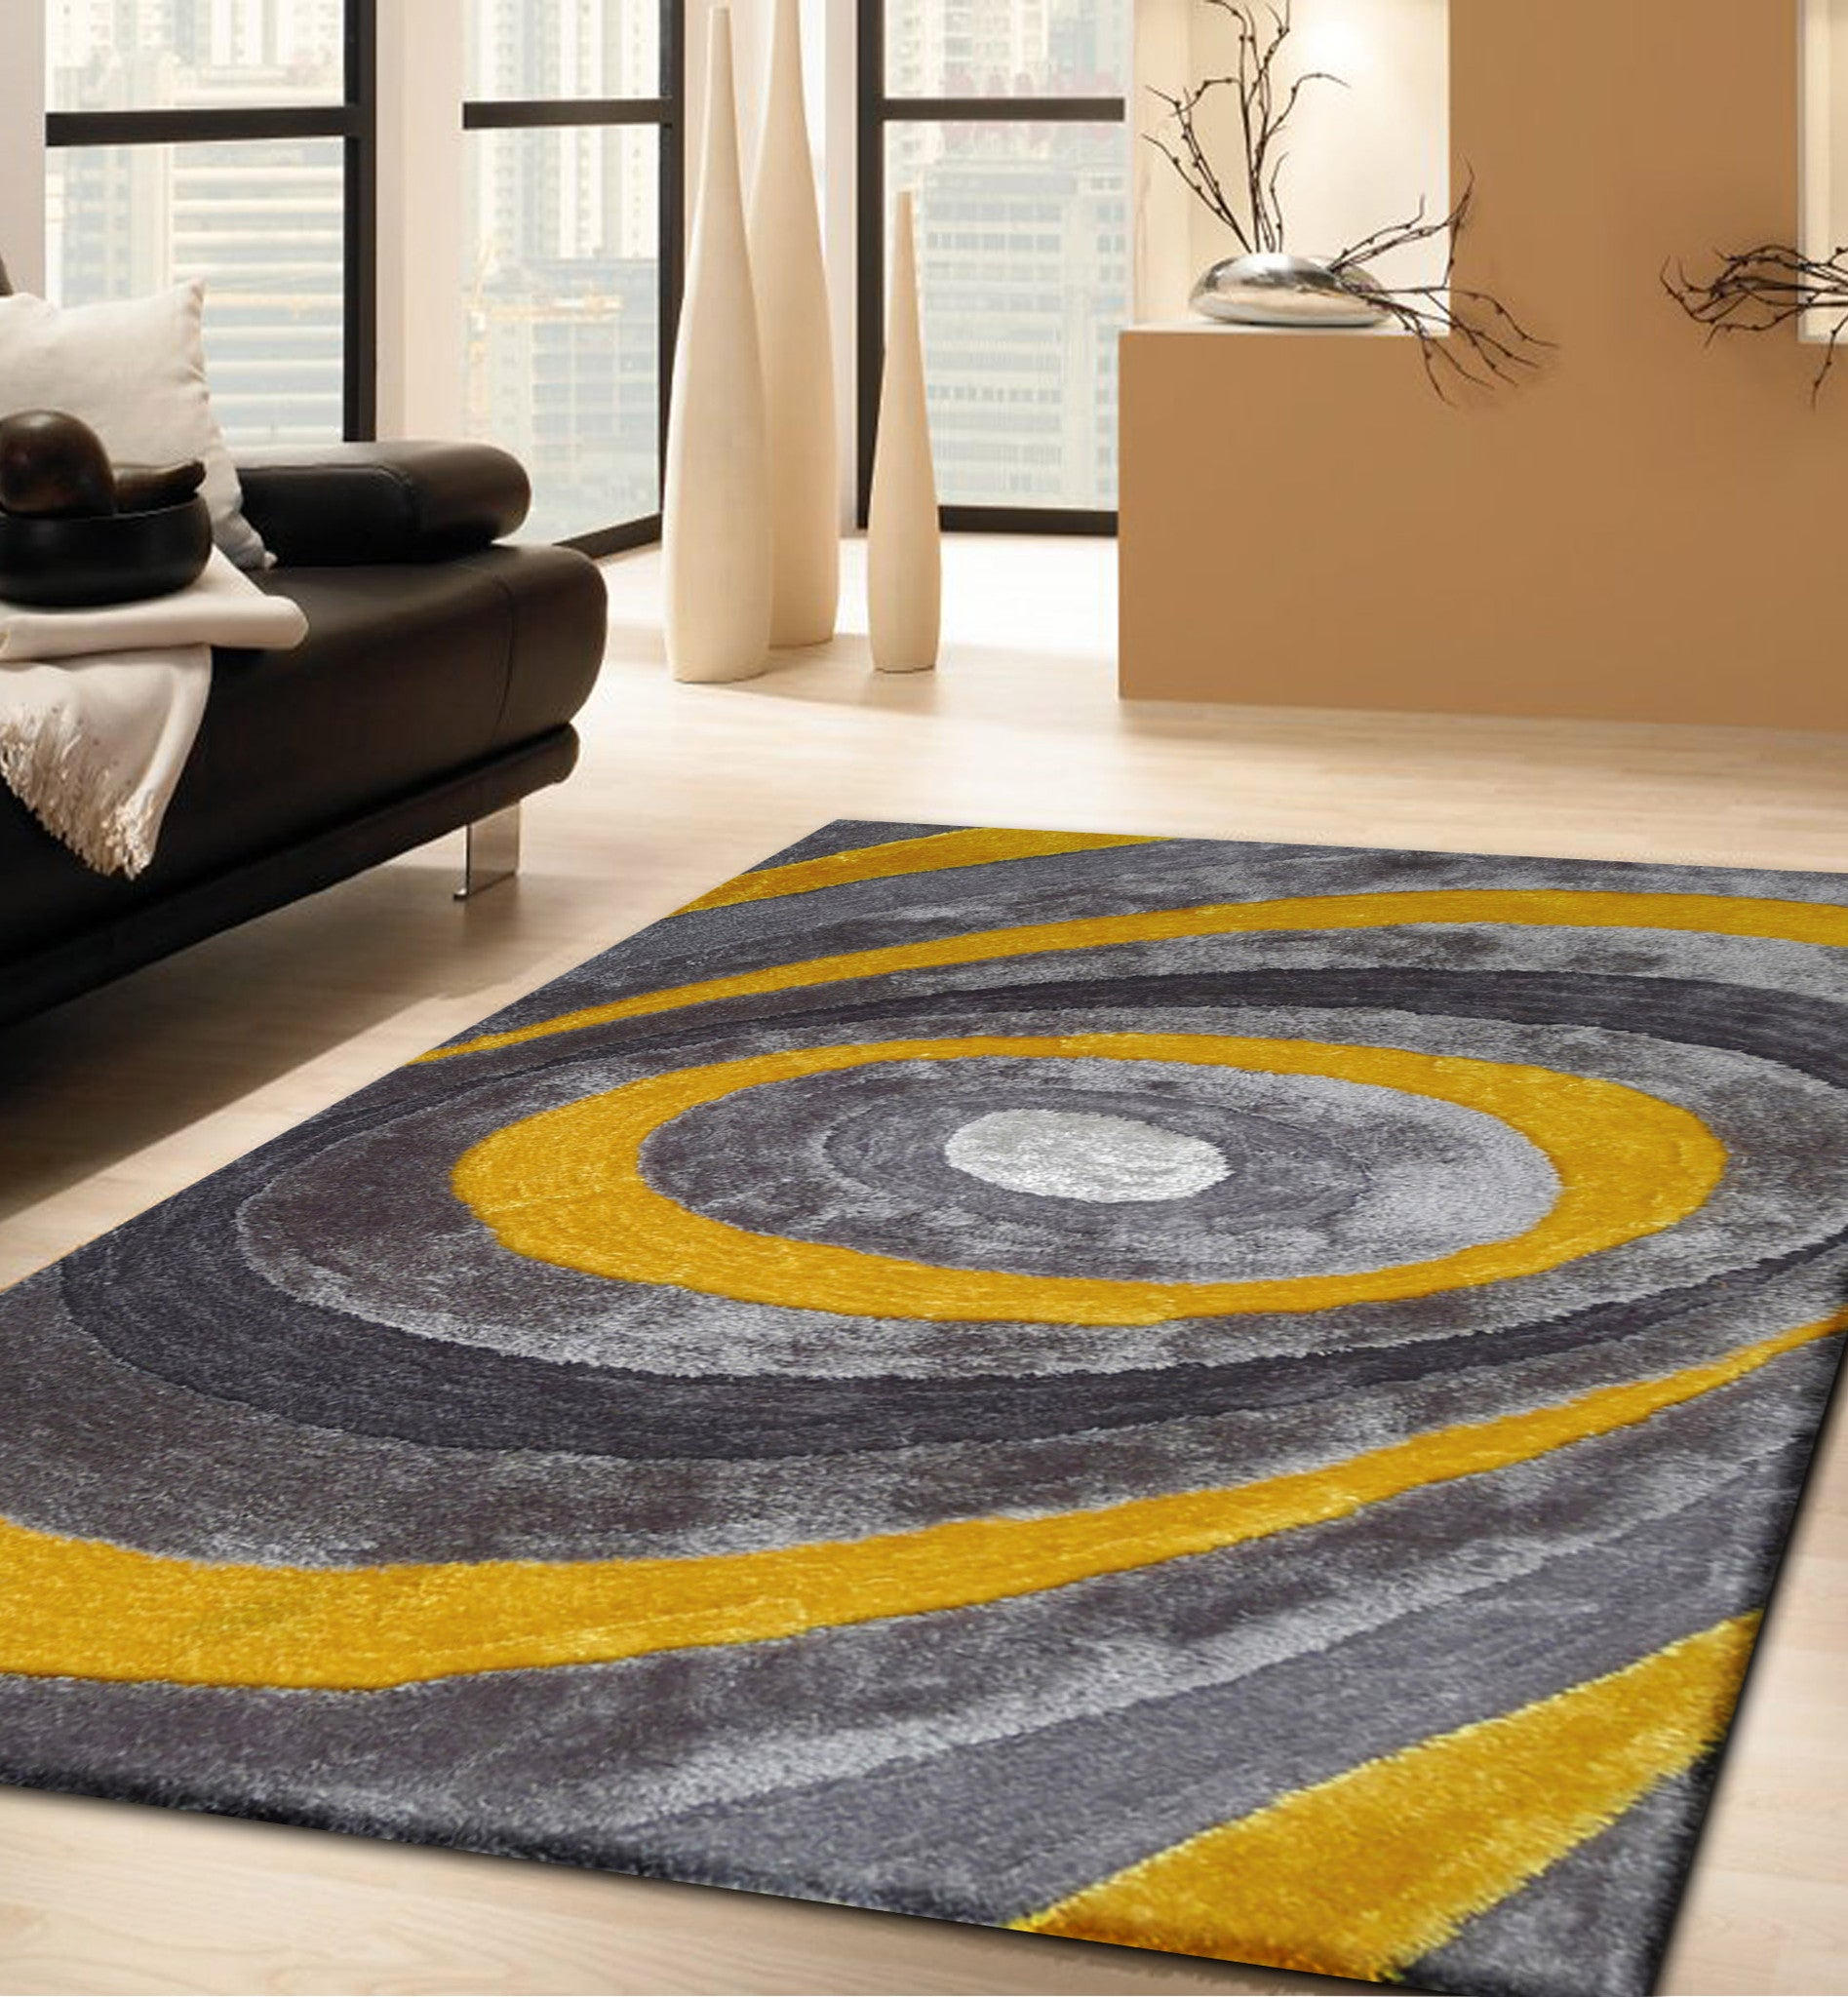 Handmade Gray U0026 Yellow 3 Dimensional Shag Area Rug With Hand Carved Design  , Area Rug ...